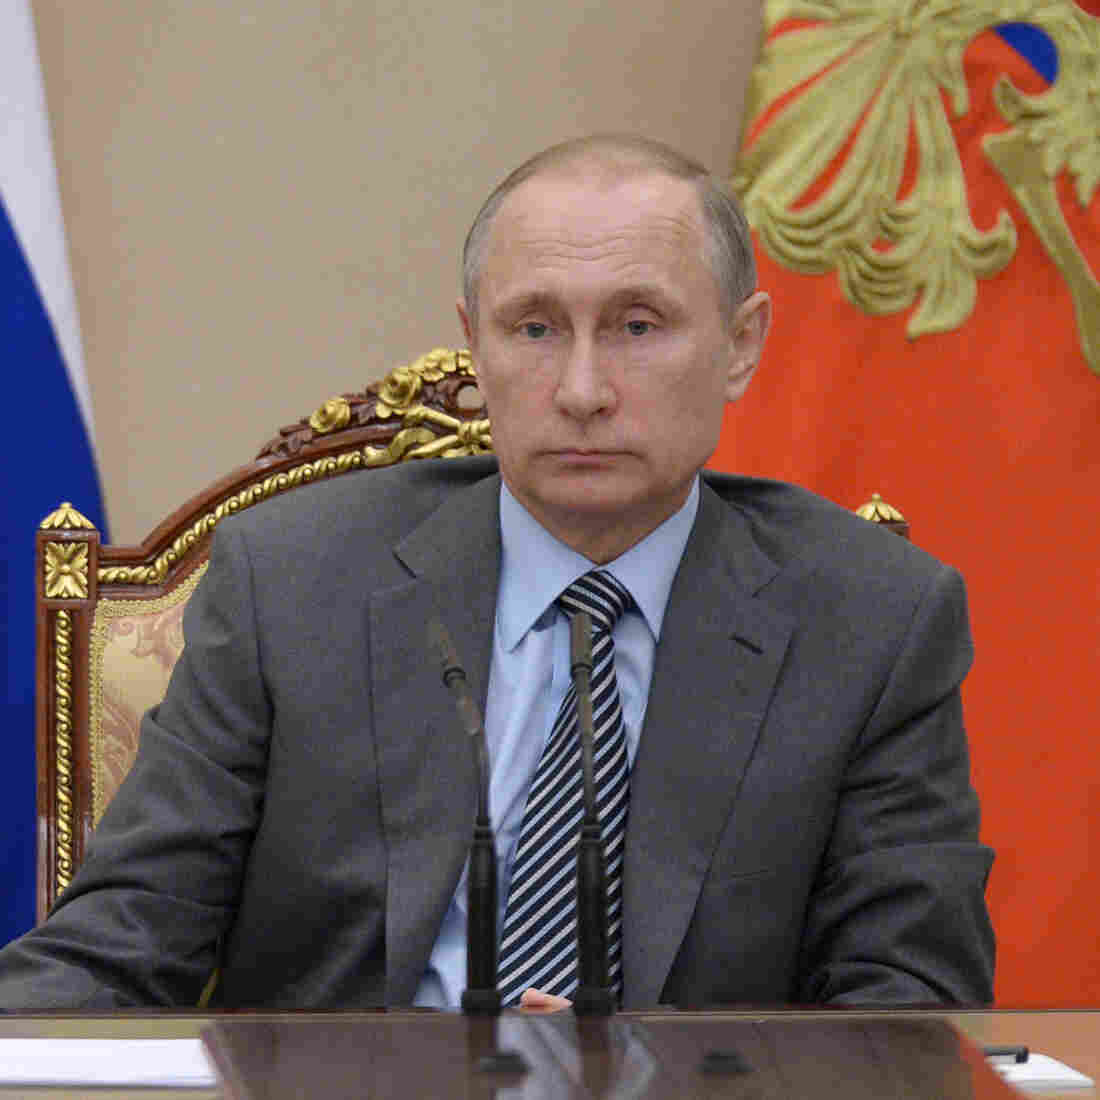 Russian President Vladimir Putin chairs a recent meeting of Russia's Cabinet in the Kremlin. Security experts say Russia is behind the DNC hack.